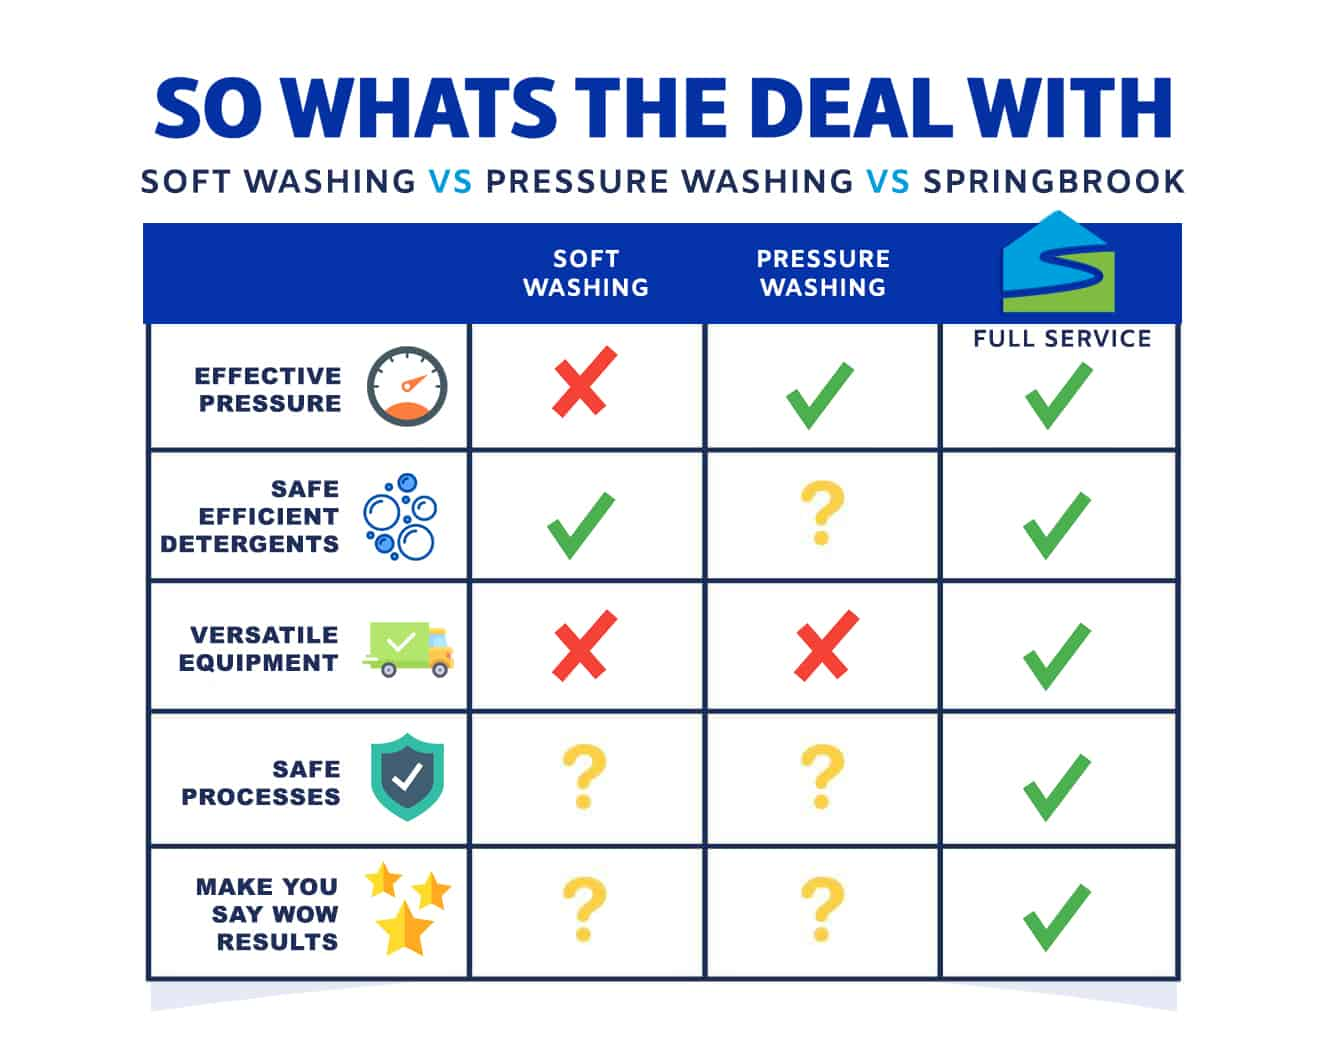 Soft Washing vs. Pressure Washing vs. SpringBrook